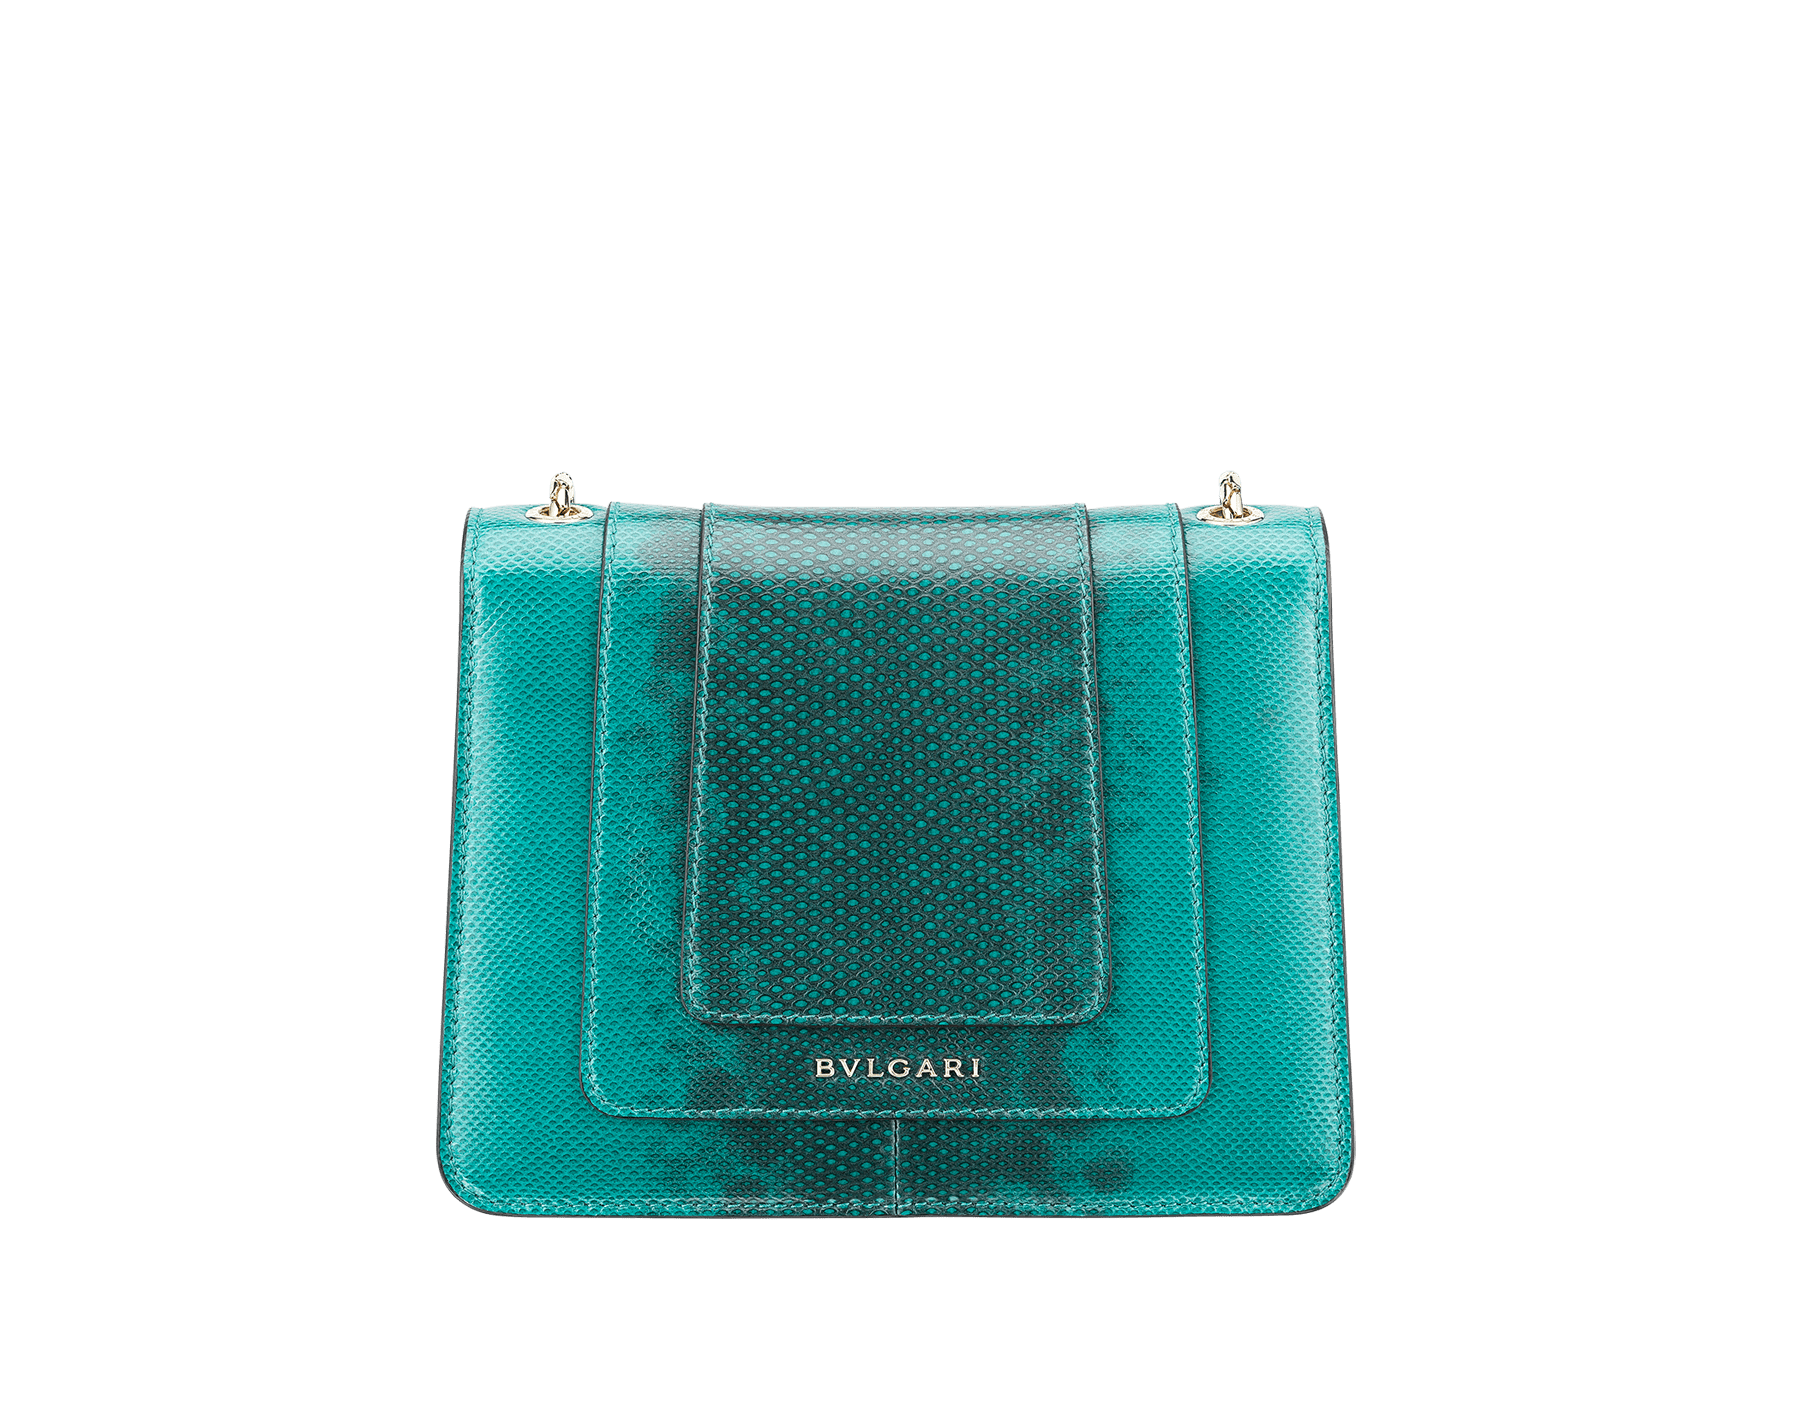 Serpenti Forever crossbody bag in tropical turquoise shiny karung skin. Snakehead closure in light gold plated brass decorated with black and white enamel, and green malachite eyes. 287912 image 3